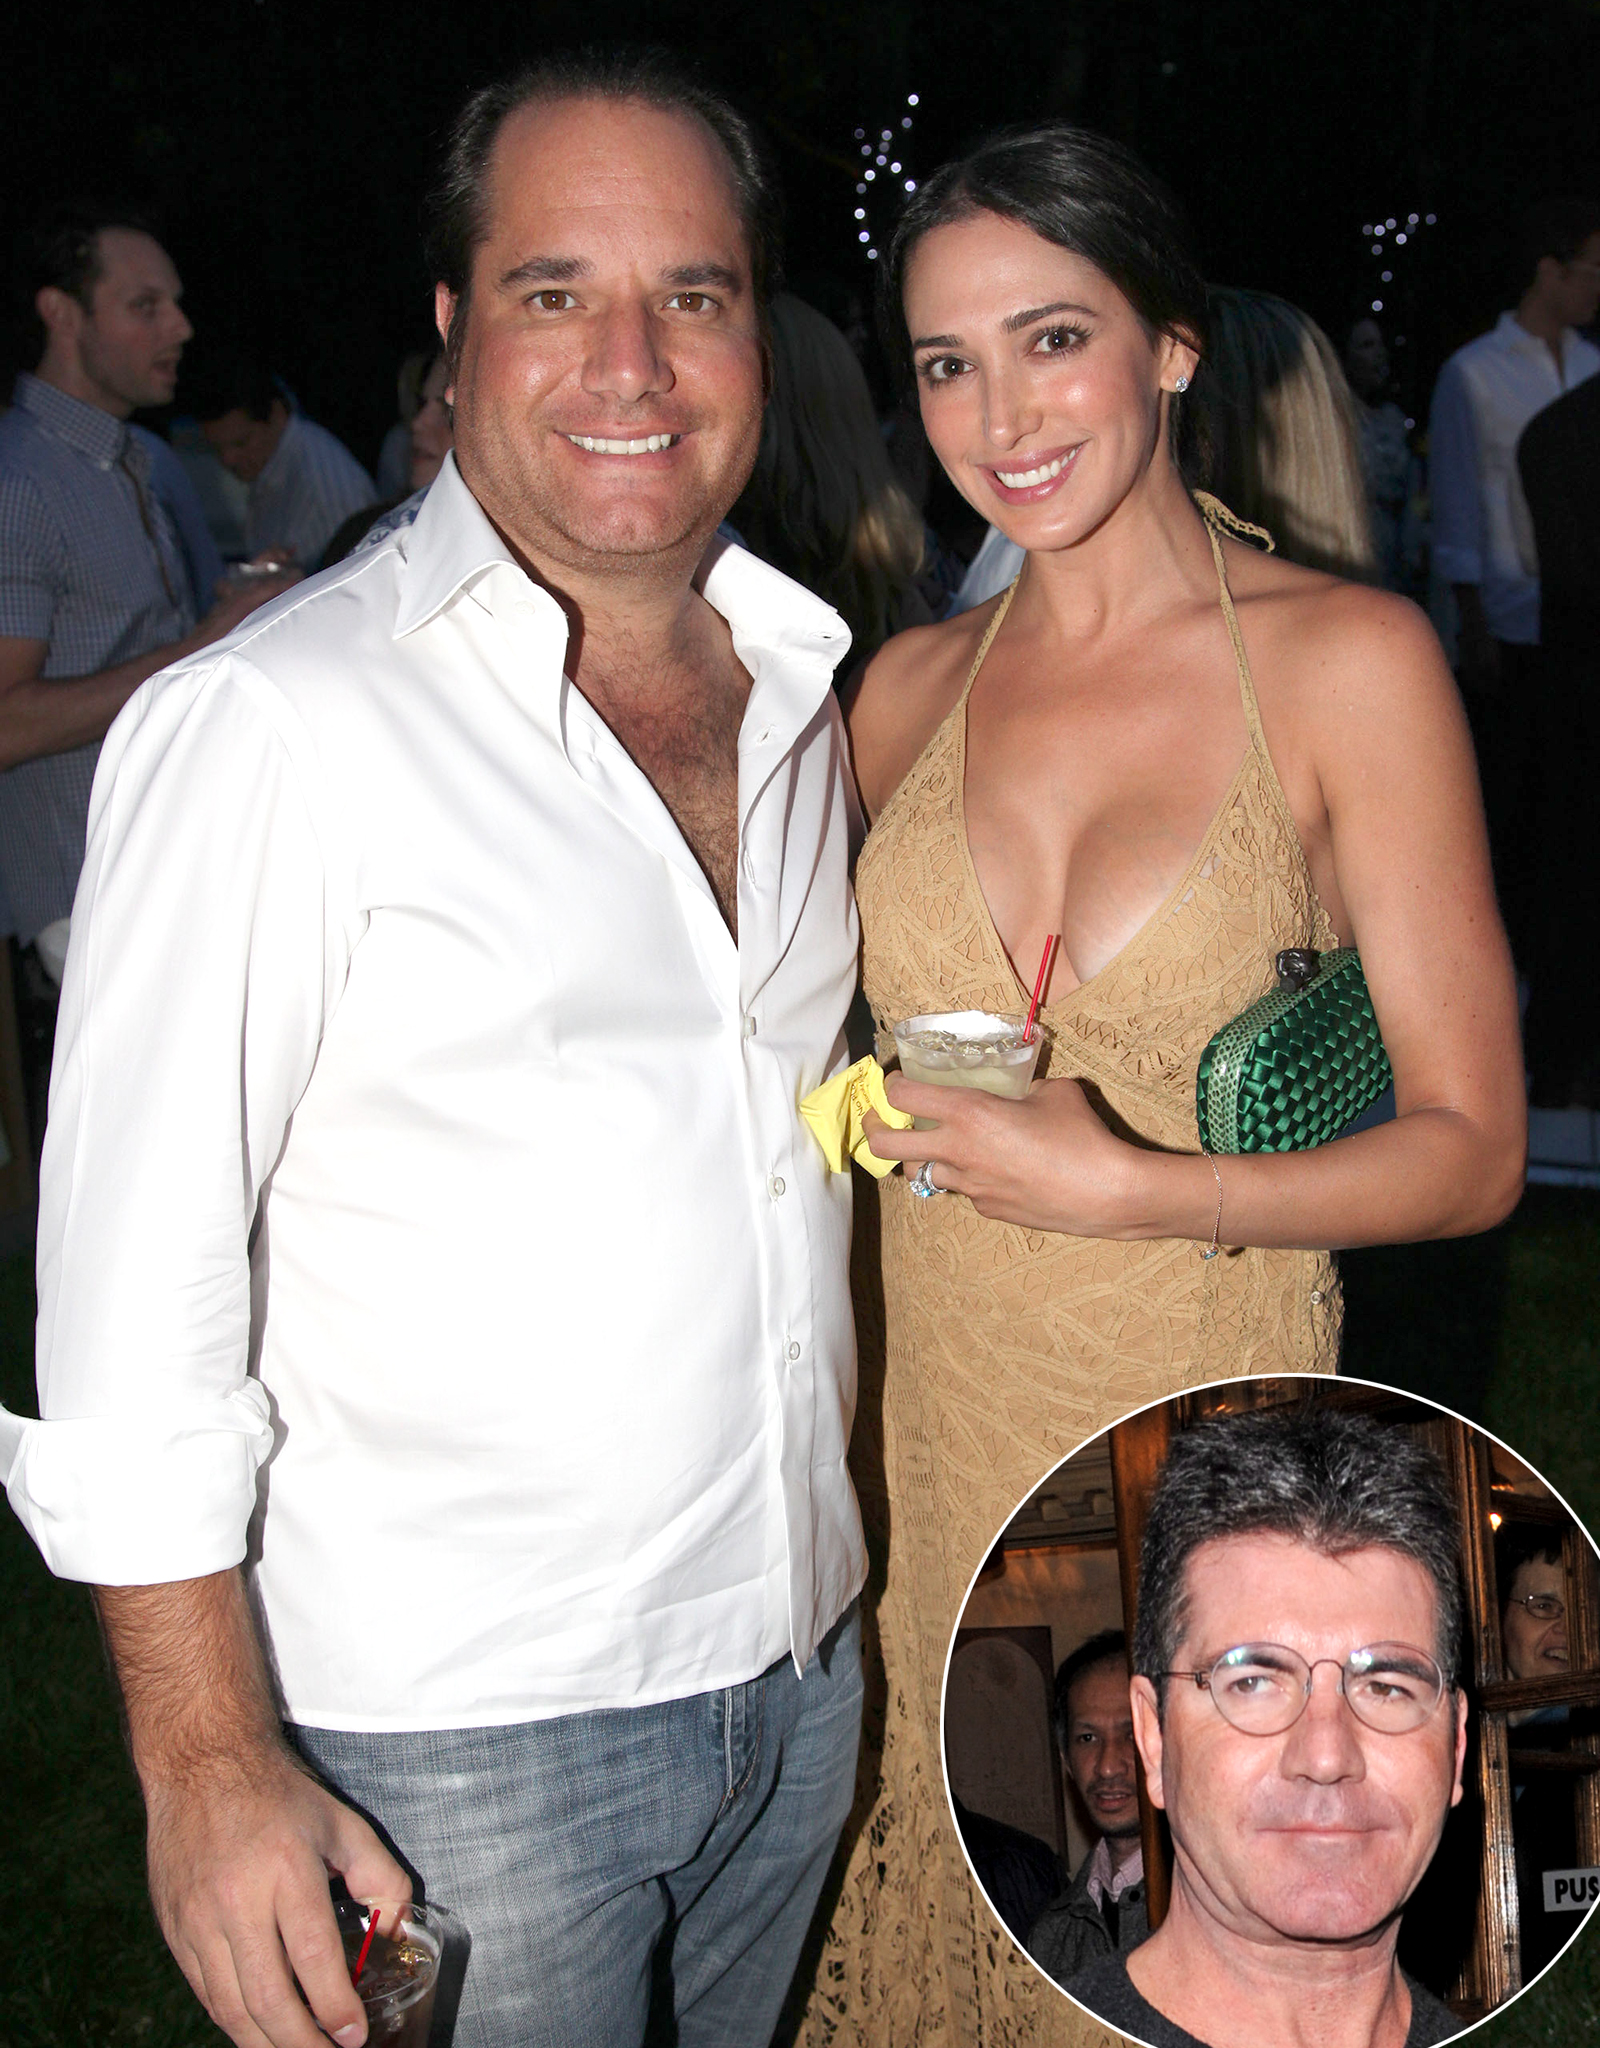 Andrew and Lauren Silverman / Simon Cowell (Splash News/FilmMagic)